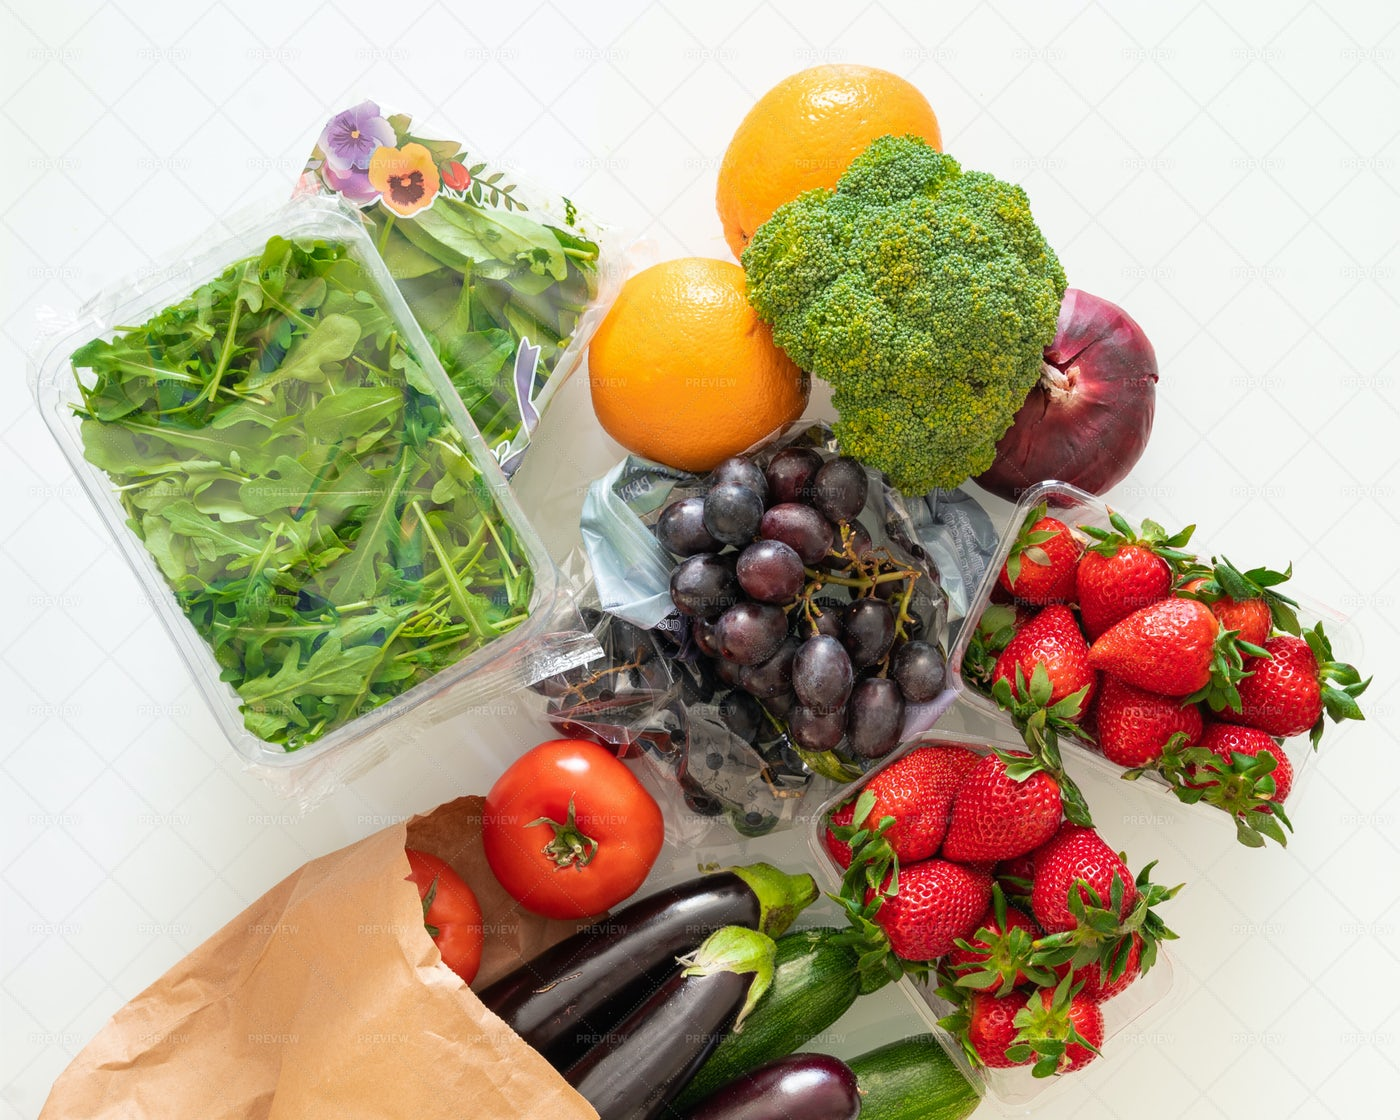 Fruits And Vegetables: Stock Photos